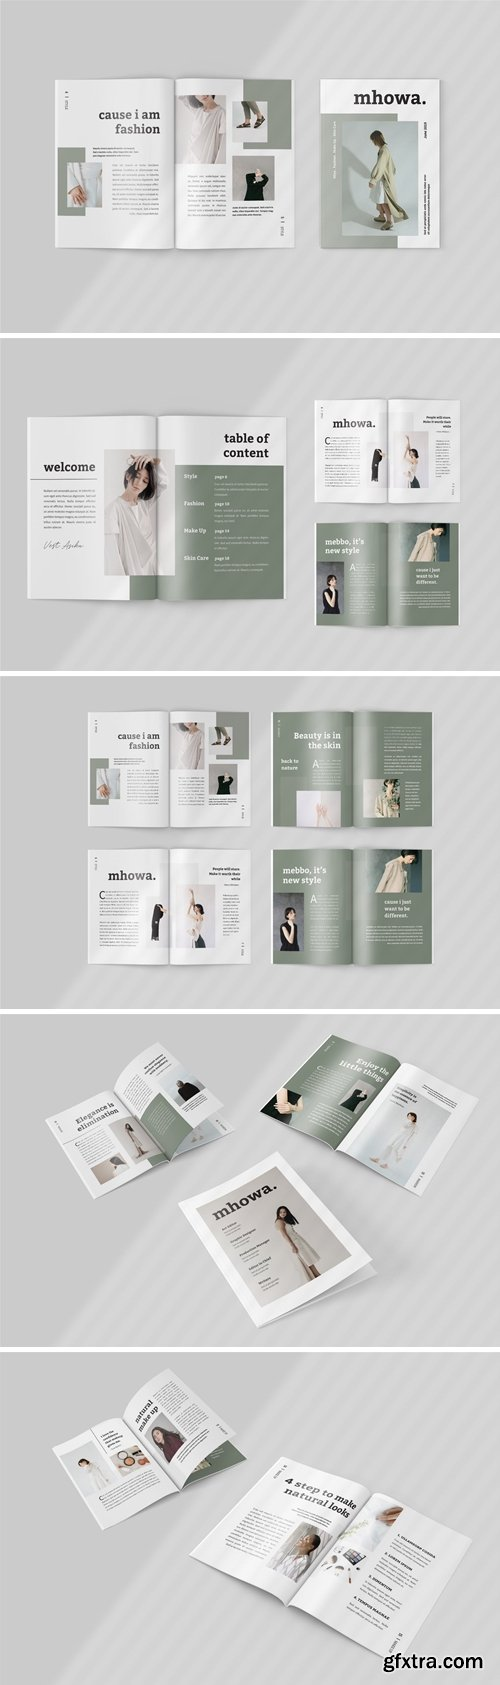 Mhowa - Fashion Lookbook Template